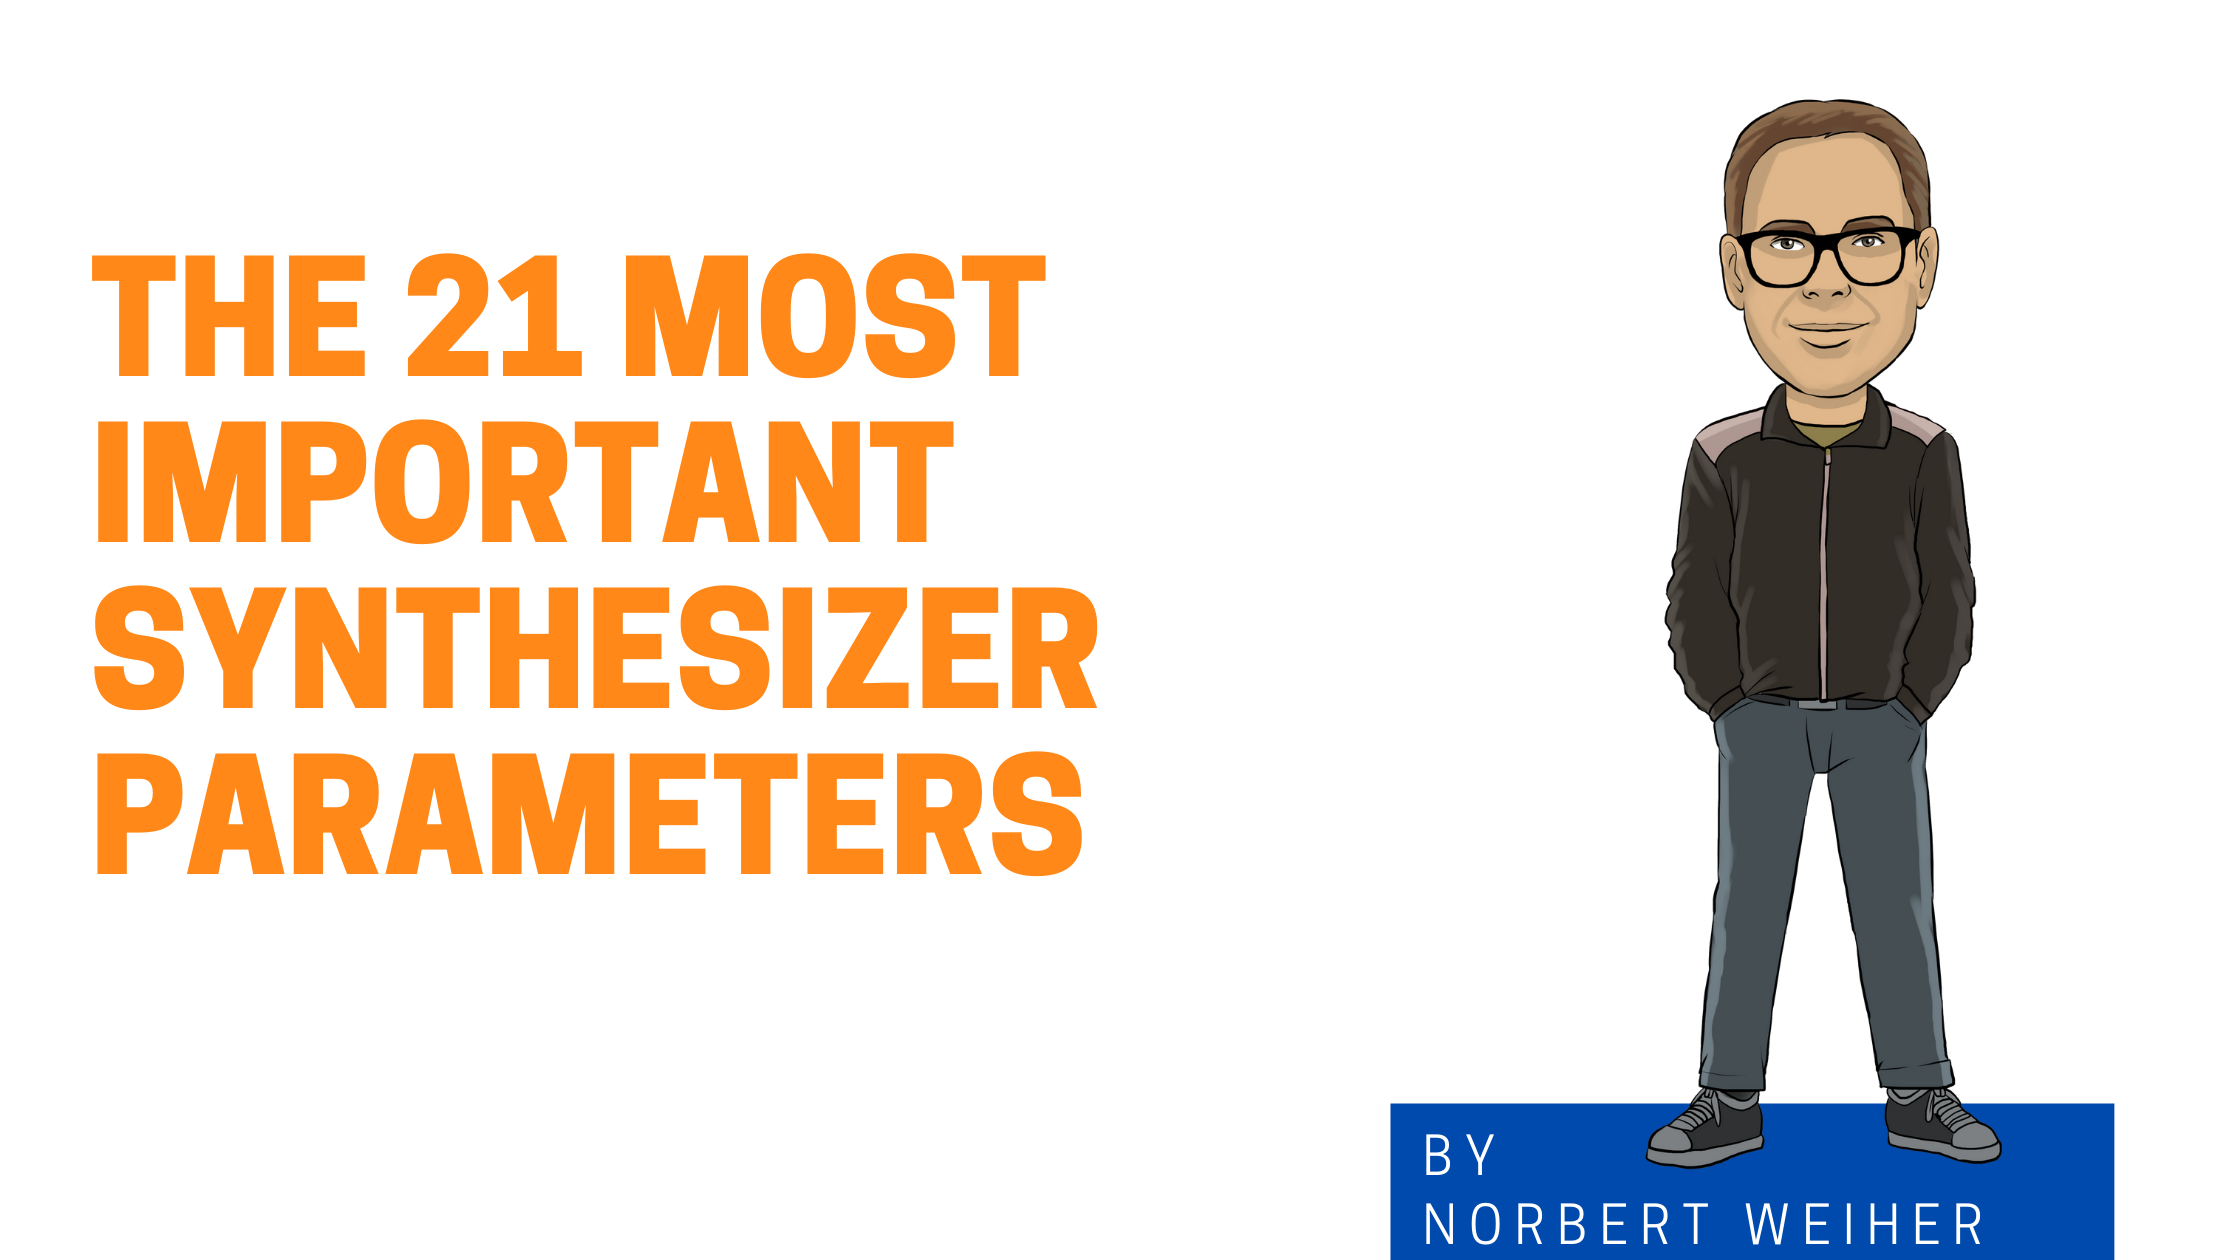 Norbert's cartoon graphic The 21 Most Important Synthesizer Parameters